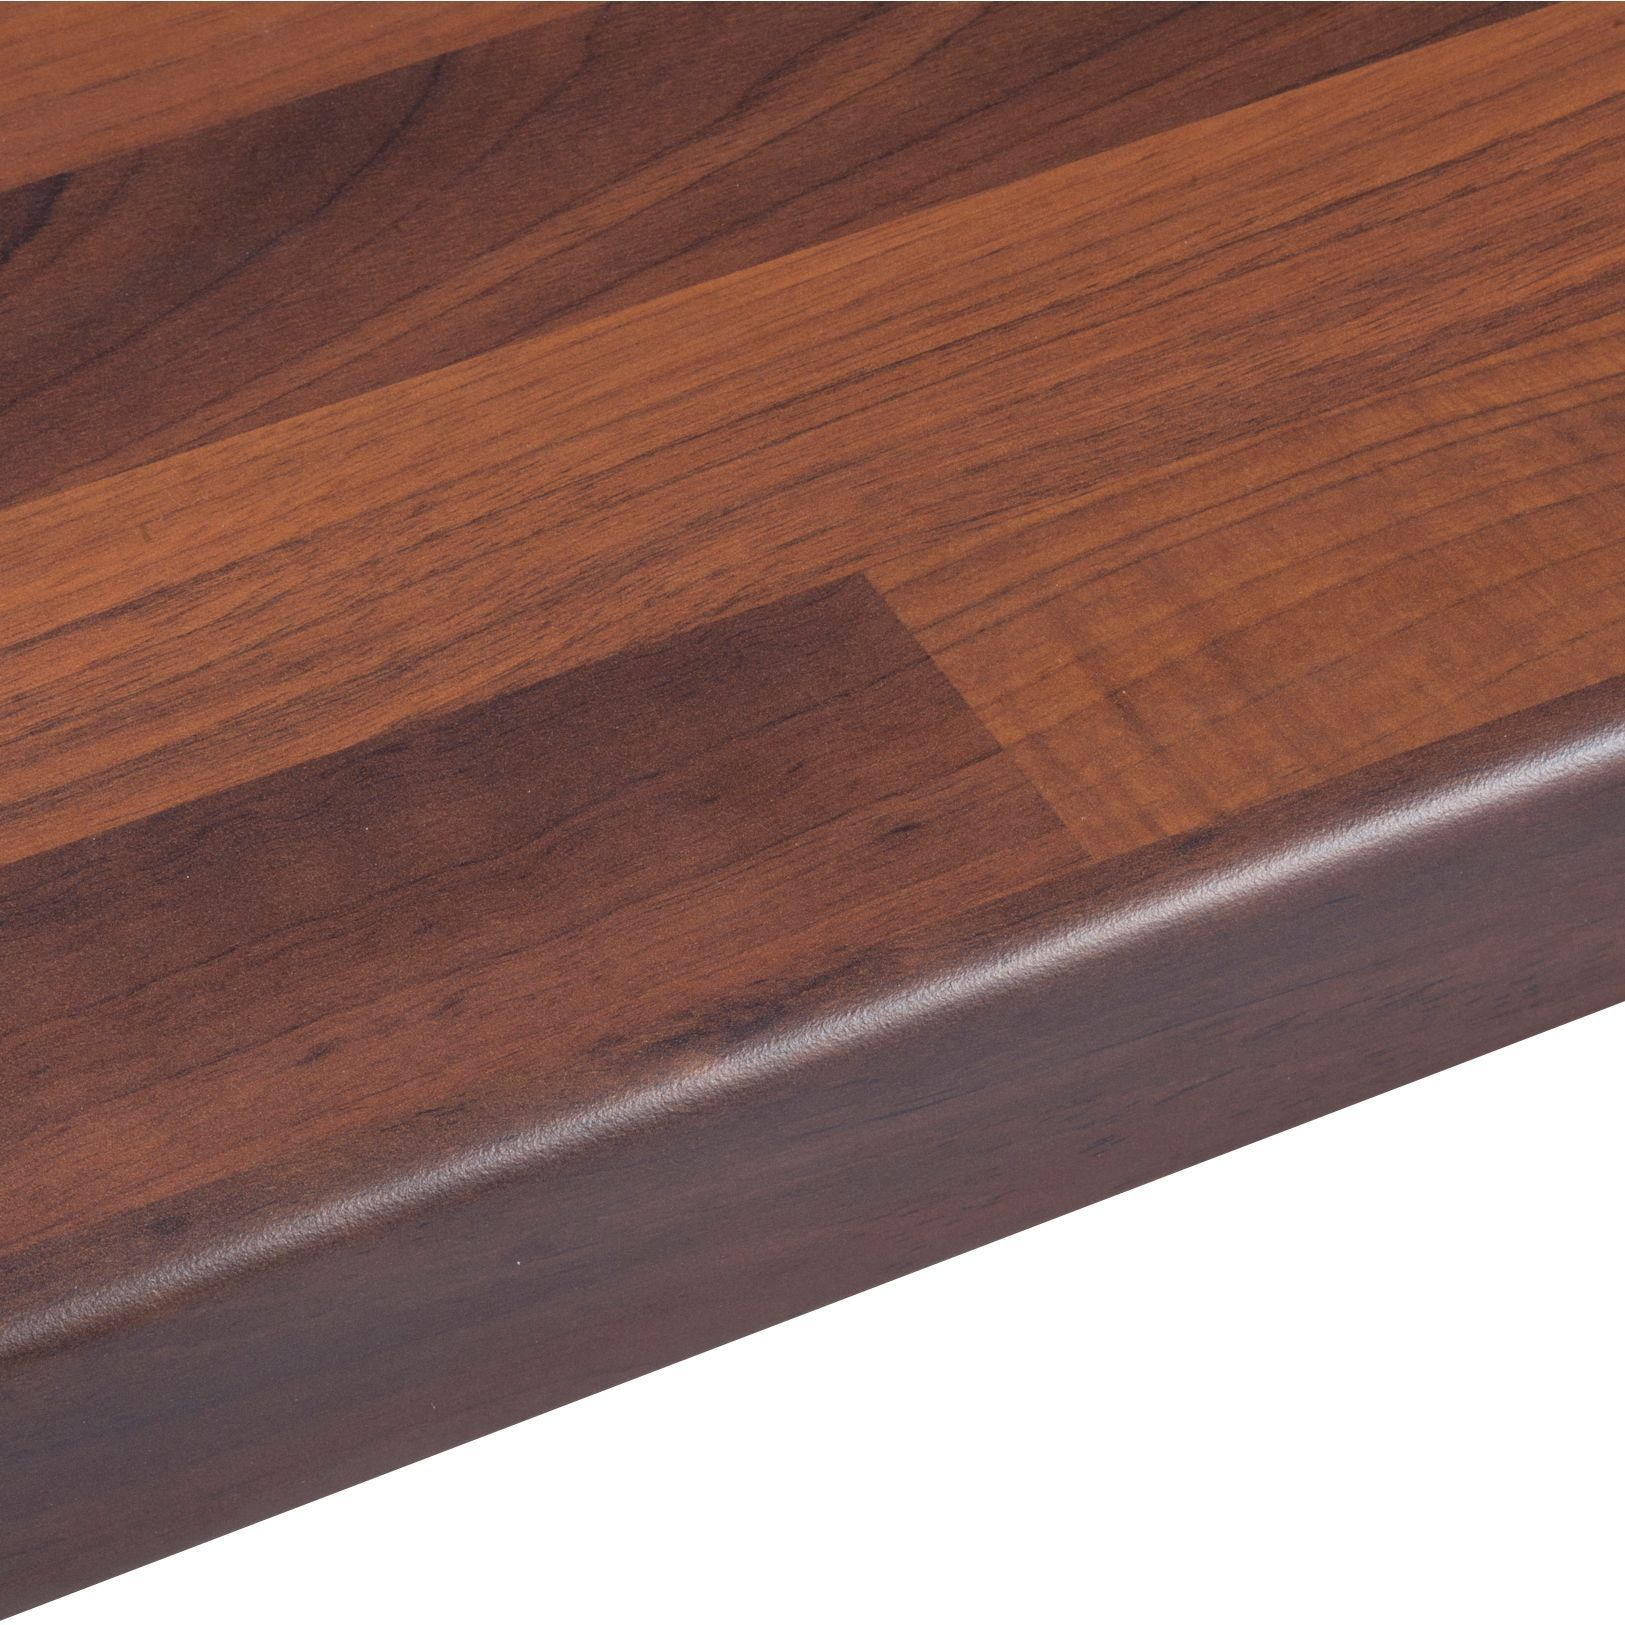 38mm Walnut Butchers Block Wood Effect Round Edge Worktop L 3000mm D 600mm Departments Diy At B Q